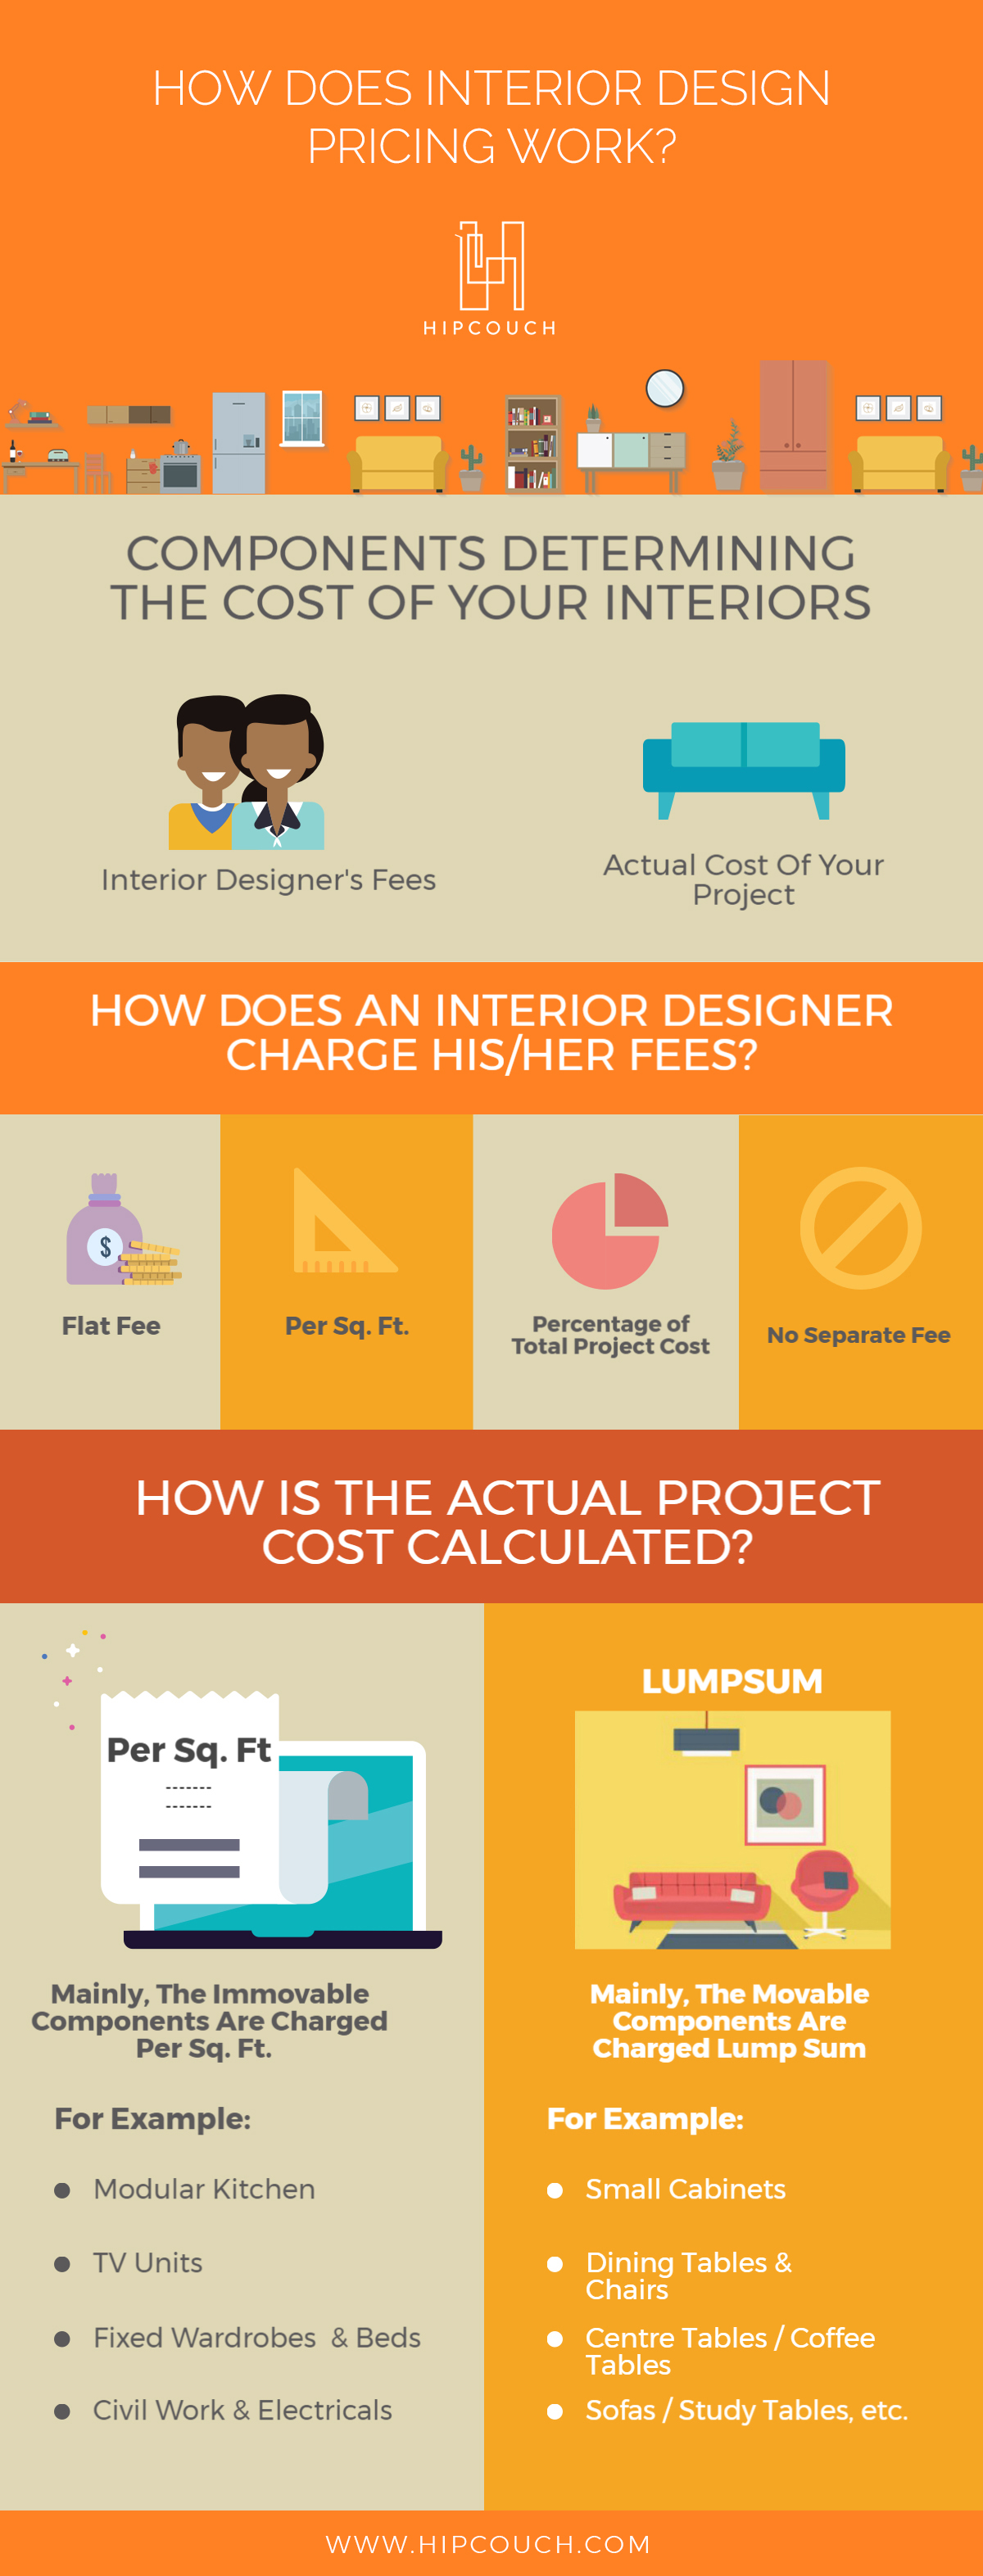 How does Interior Design Pricing Work?